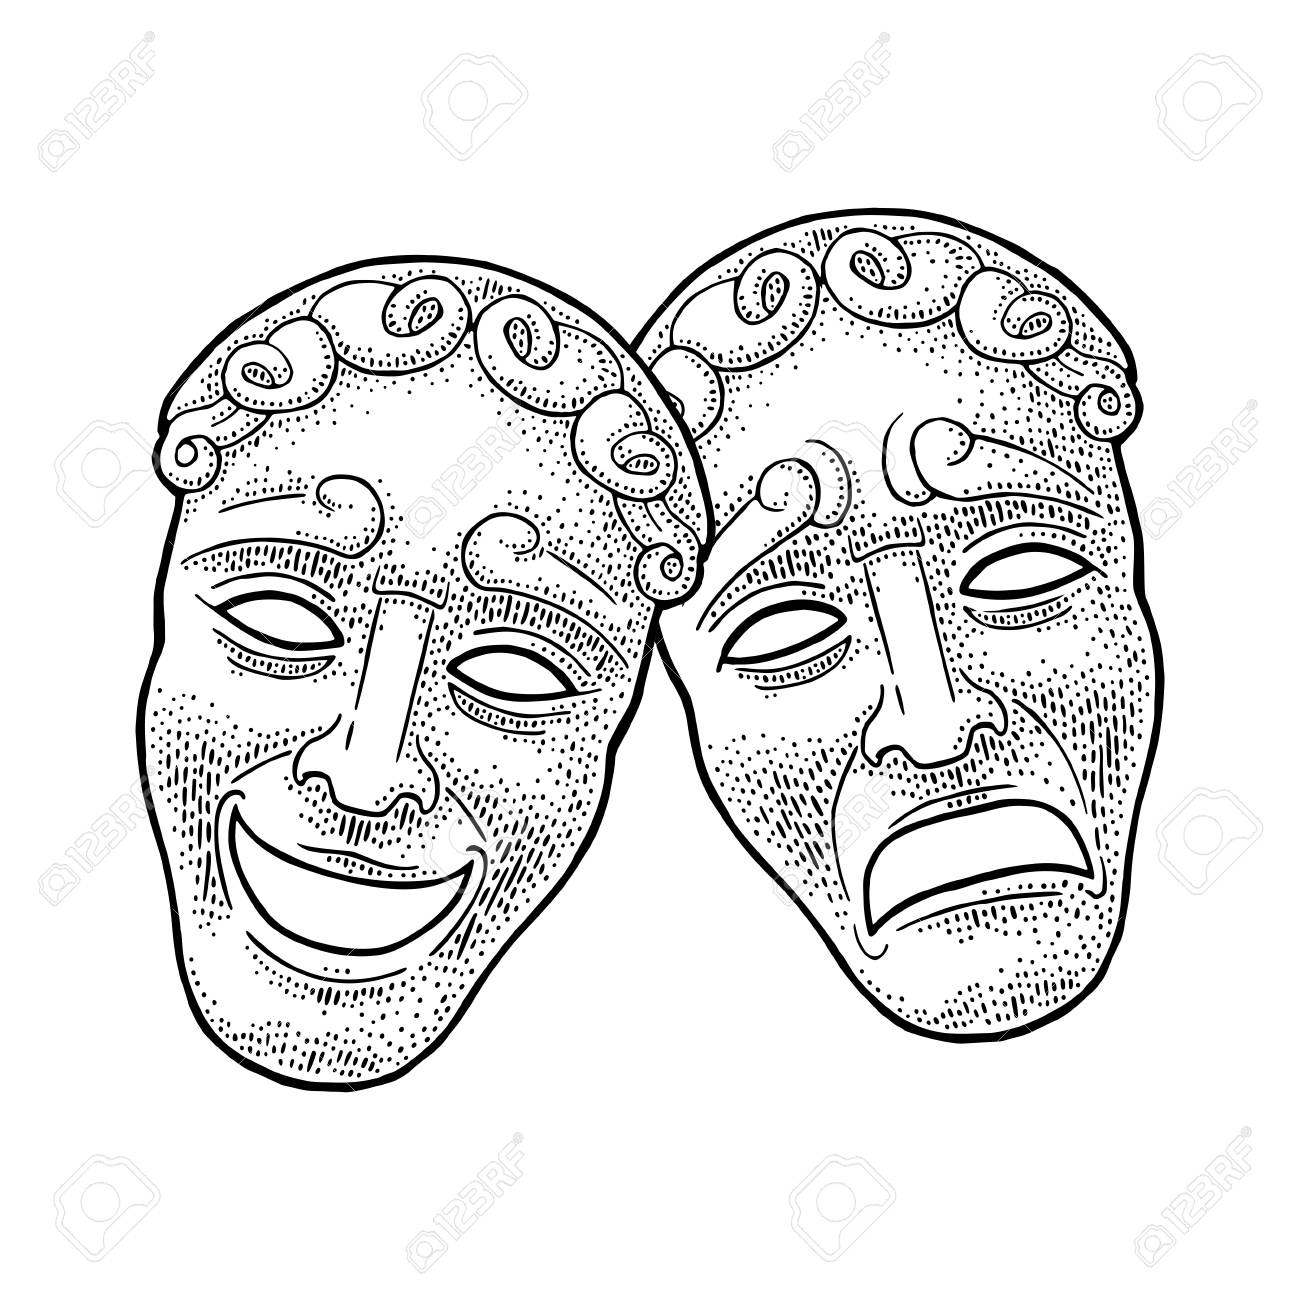 Comedy and tragedy theater masks. Vector engraving vintage black illustration - 108318124